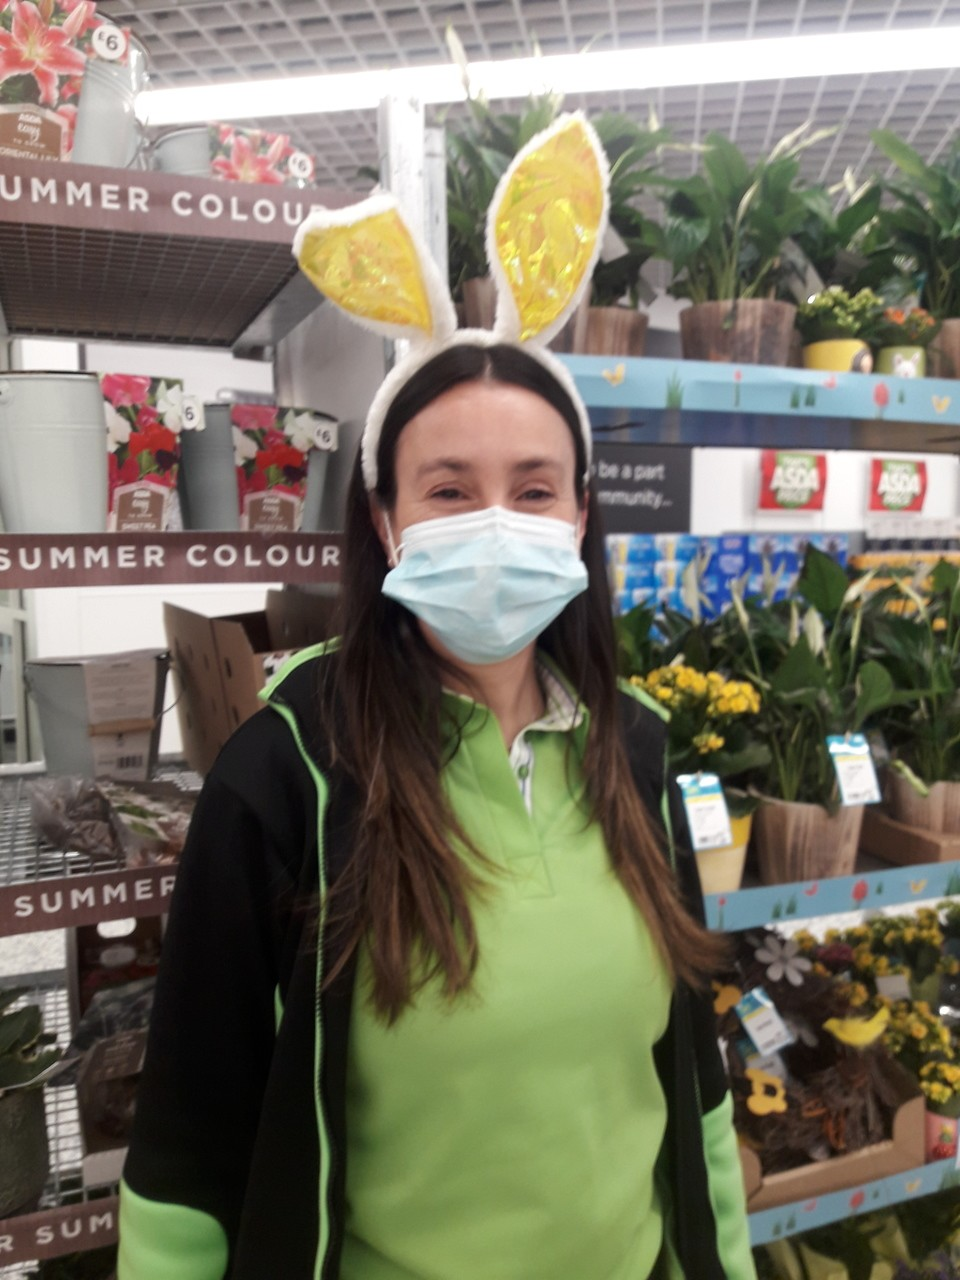 Happy Easter from Asda Bournemouth | Asda Bournemouth